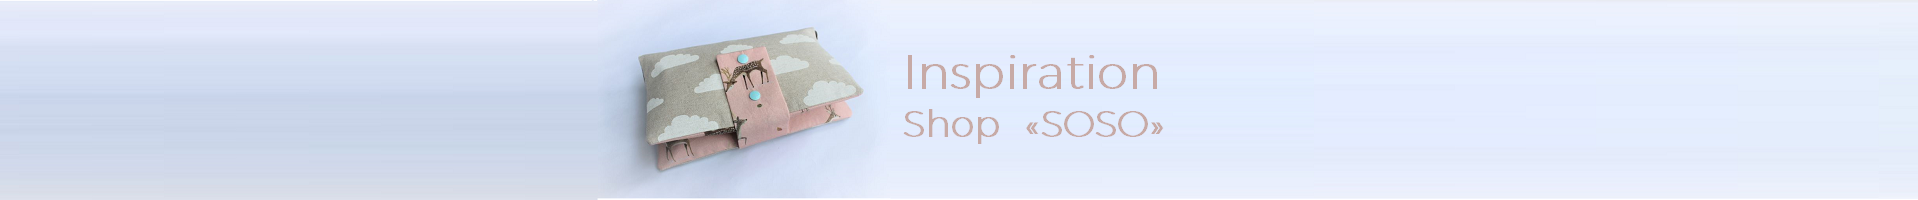 Inspiration Shop Soso